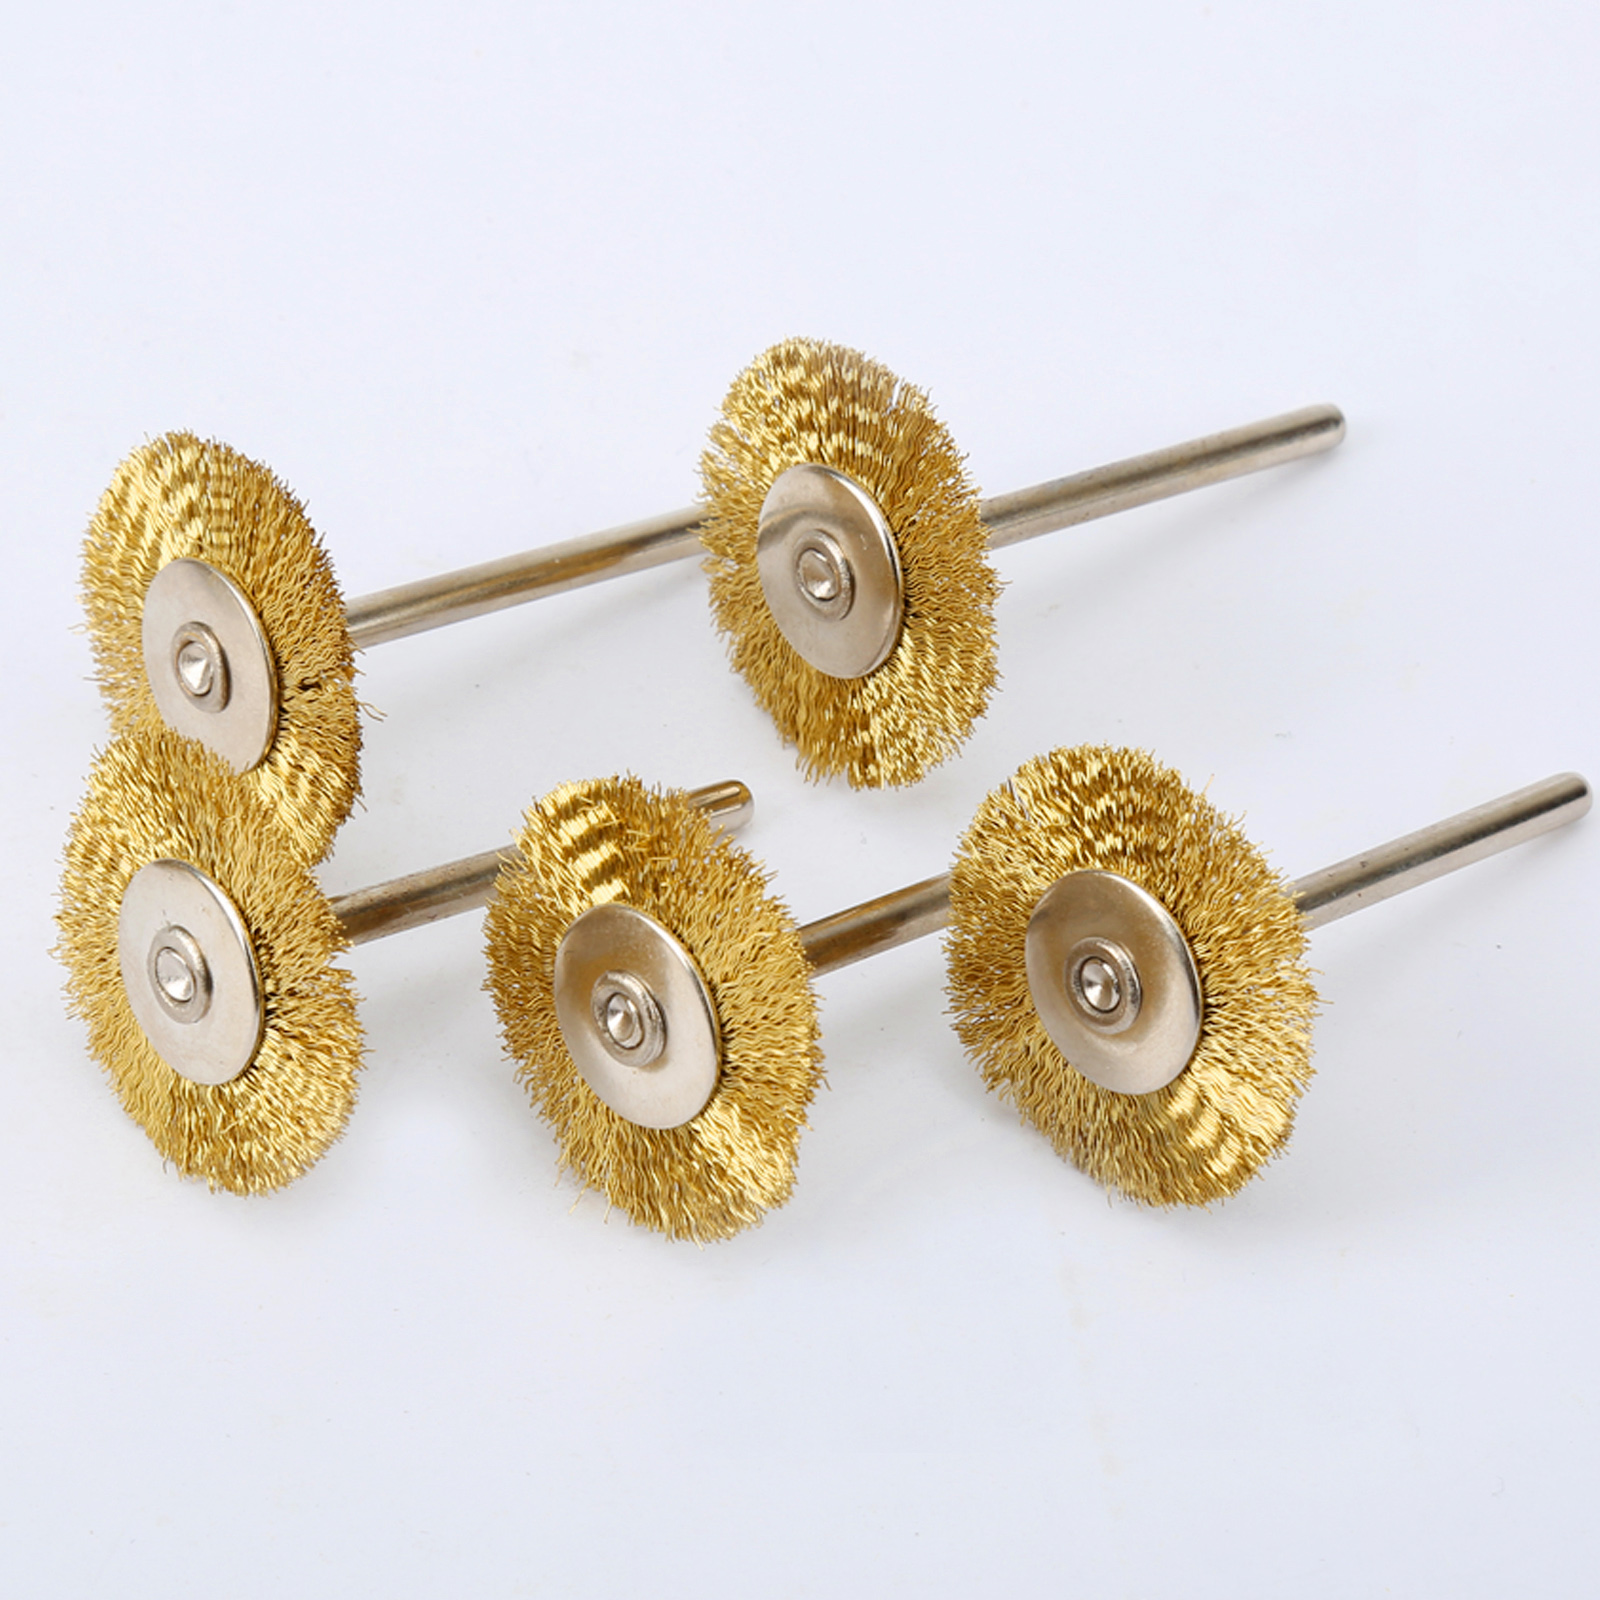 DRELD 5PCS 25mm Brass Wire Wheel Brushes Dremel Accessories Mini Drill Polishing Grinding For Grinder Rotary Tools 3.17mm Shank